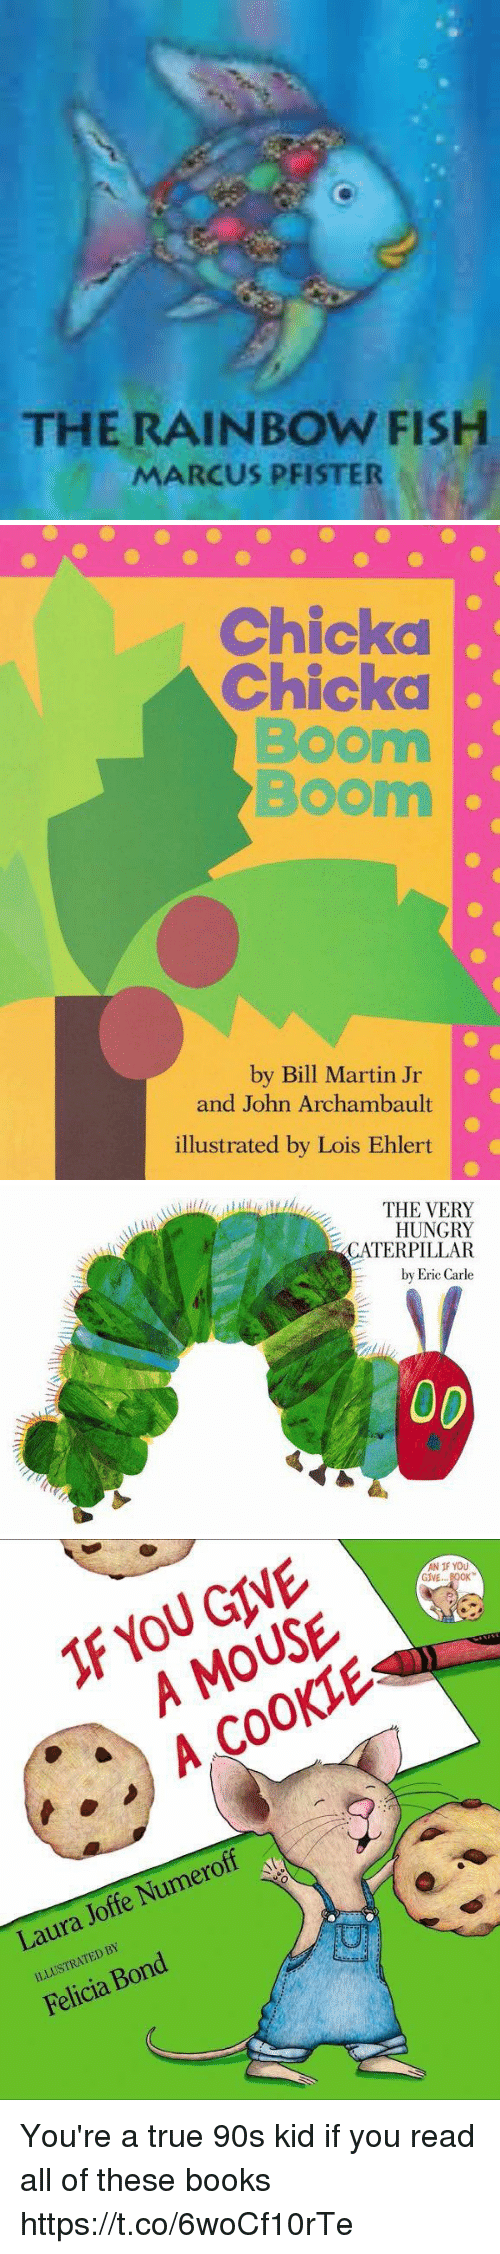 Books, Hungry, and Martin: THE RAINBOW FISH  MARCUS PFISTER   Chickd  Chicka  Boom  Boom  by Bill Martin Jr  and John Archambault  illustrated by Lois Ehlert   THE VERY  HUNGRY  CATERPILLAR  by Eric Carle   F YOU GIVE  A MOUSE  A COOKIE  AN IF YOU  GIVE... BOK  Laura Joffe Numeroff  ILLUSTRATED BY  Felicia Bond You're a true 90s kid if you read all of these books https://t.co/6woCf10rTe